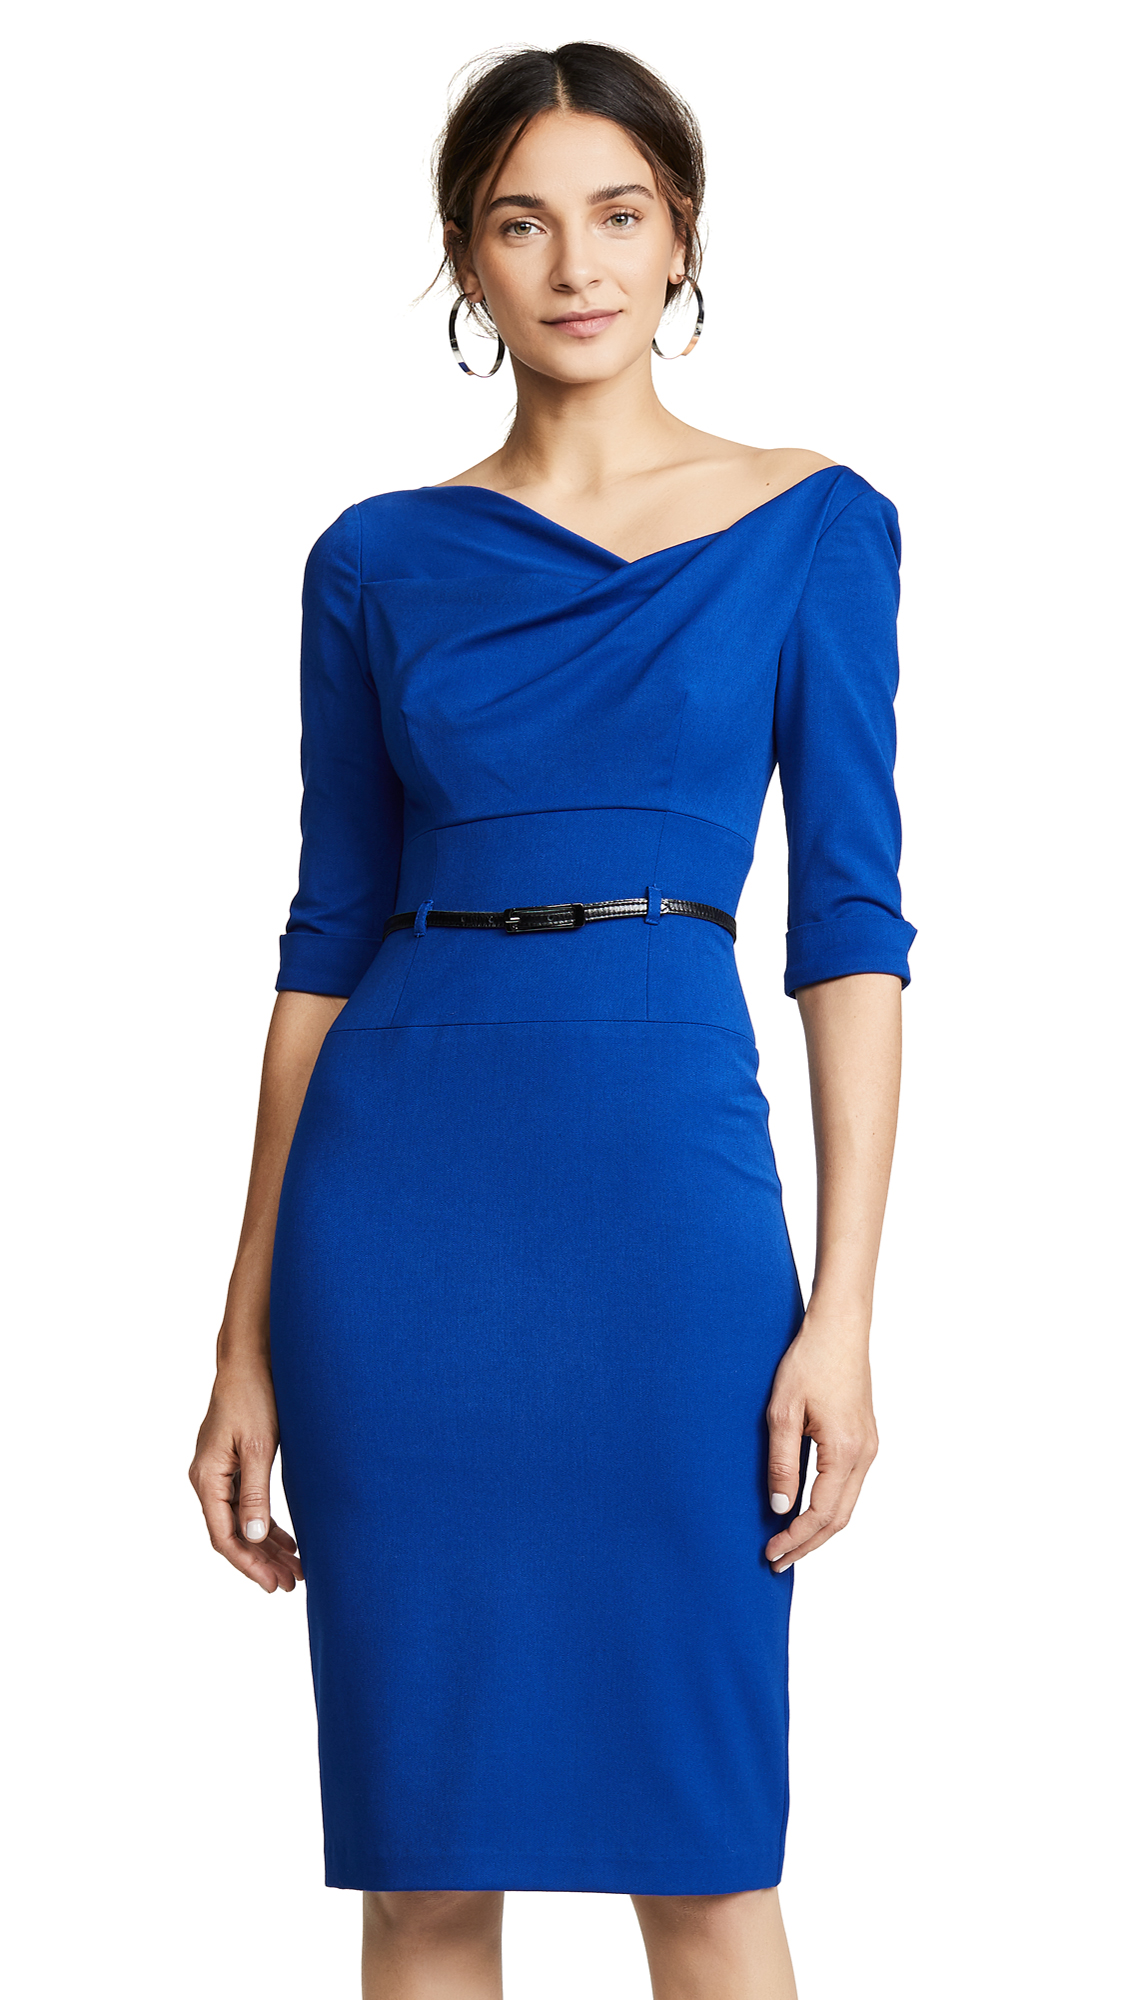 Black Halo 3/4 Sleeve Jackie O Dress - Cobalt